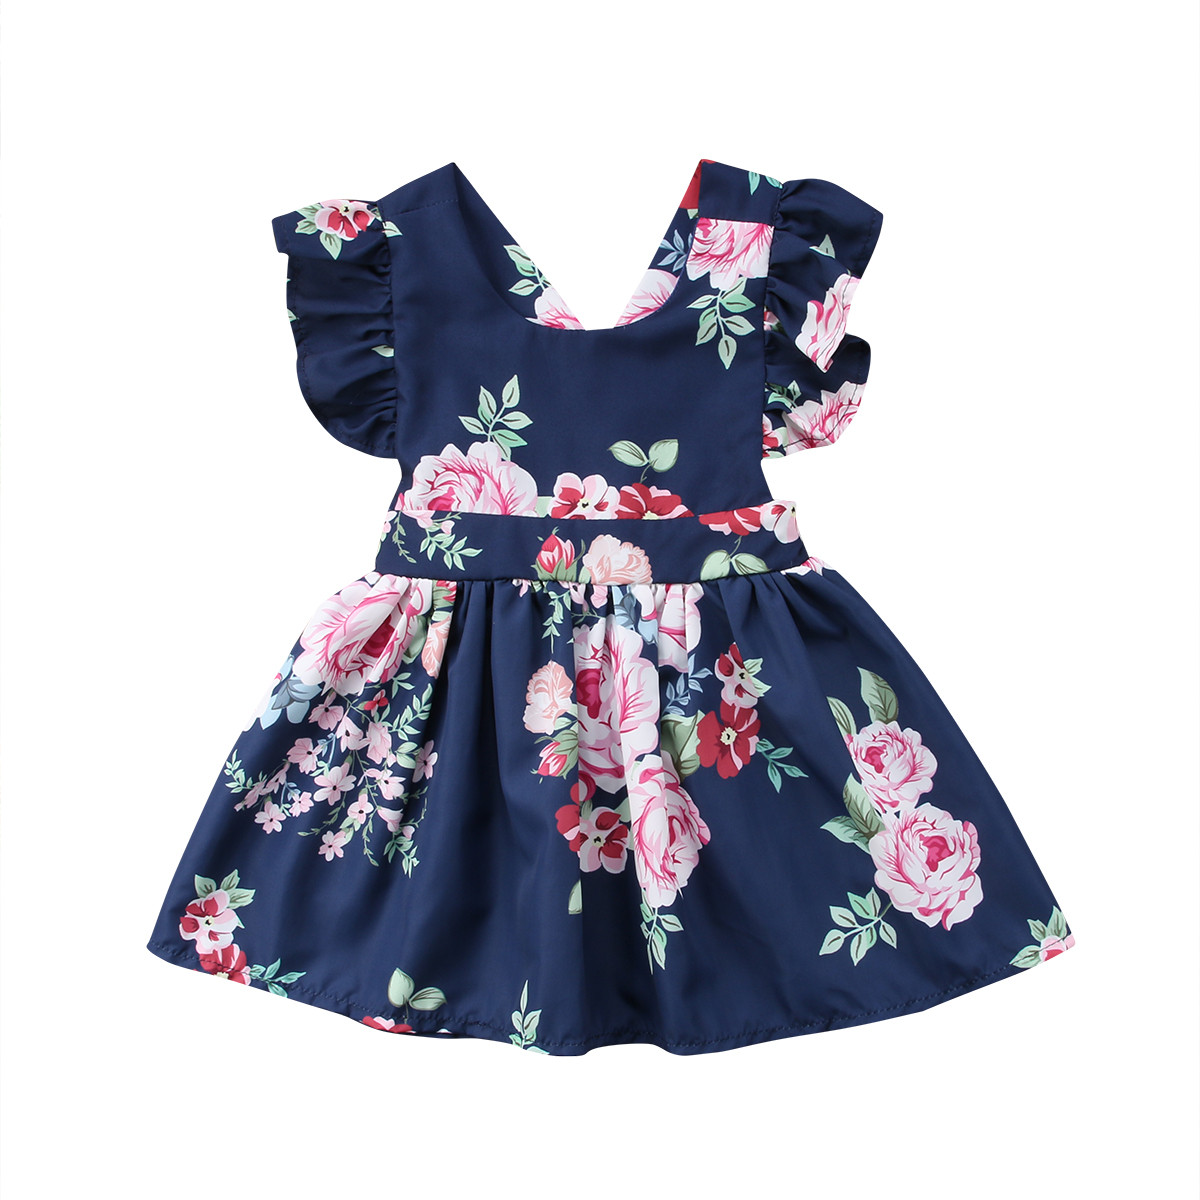 Kids Princess Baby Girls Dress Flower Party Pageant Gown Formal Dresses Sundress